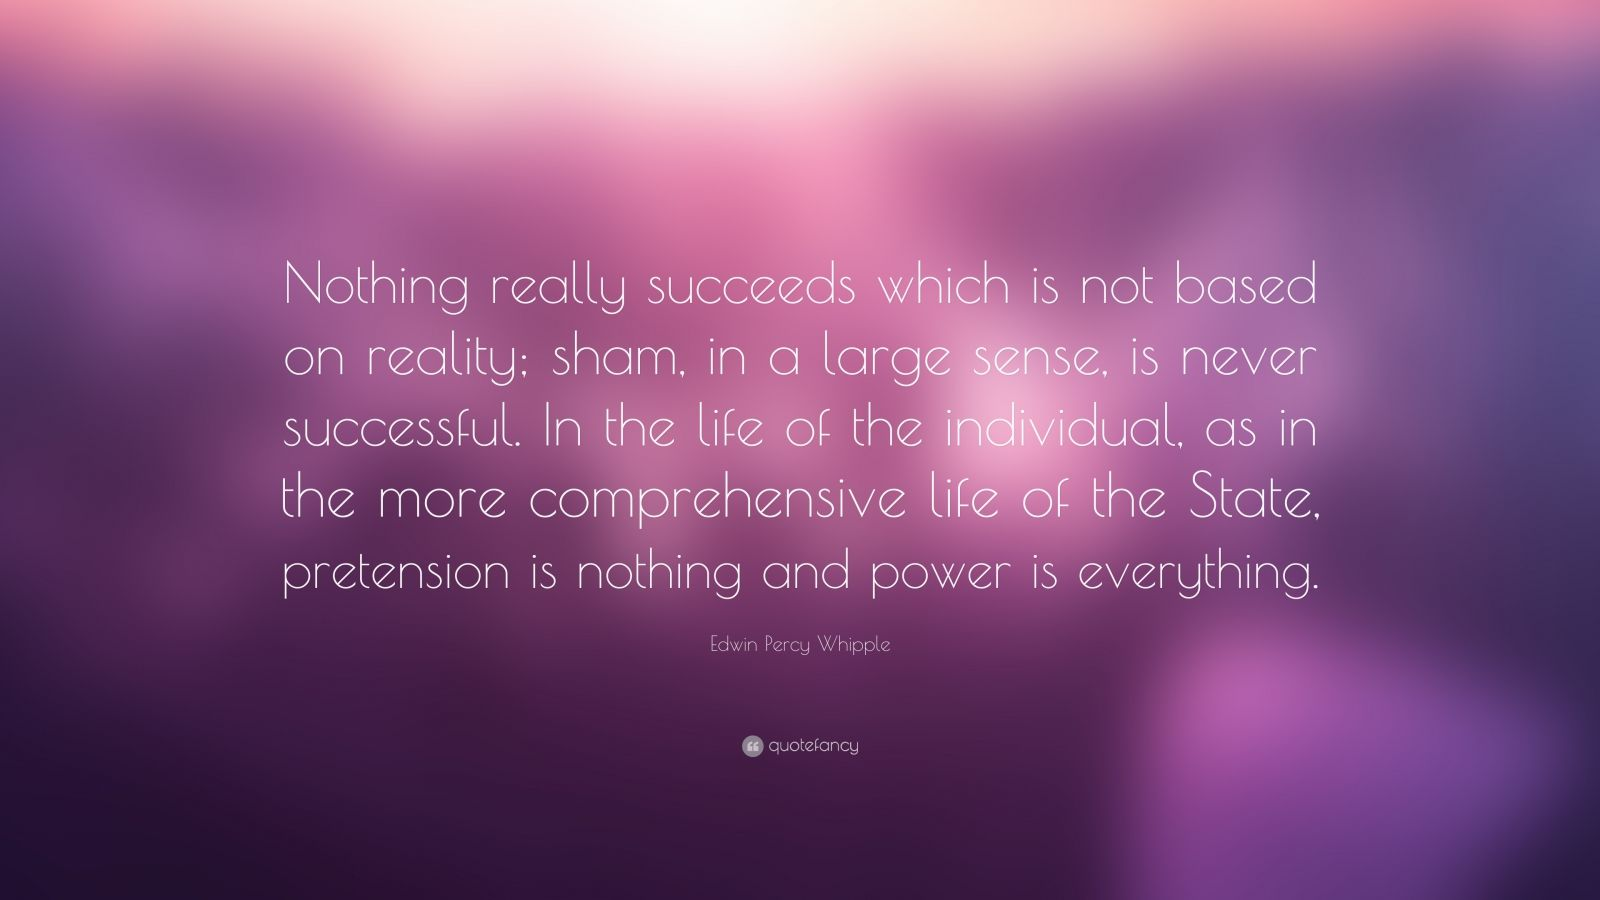 """Edwin Percy Whipple Quote: """"Nothing really succeeds which is not based on reality; sham, in a large sense, is never successful. In the life of the individual, as in the more comprehensive life of the State, pretension is nothing and power is everything."""""""